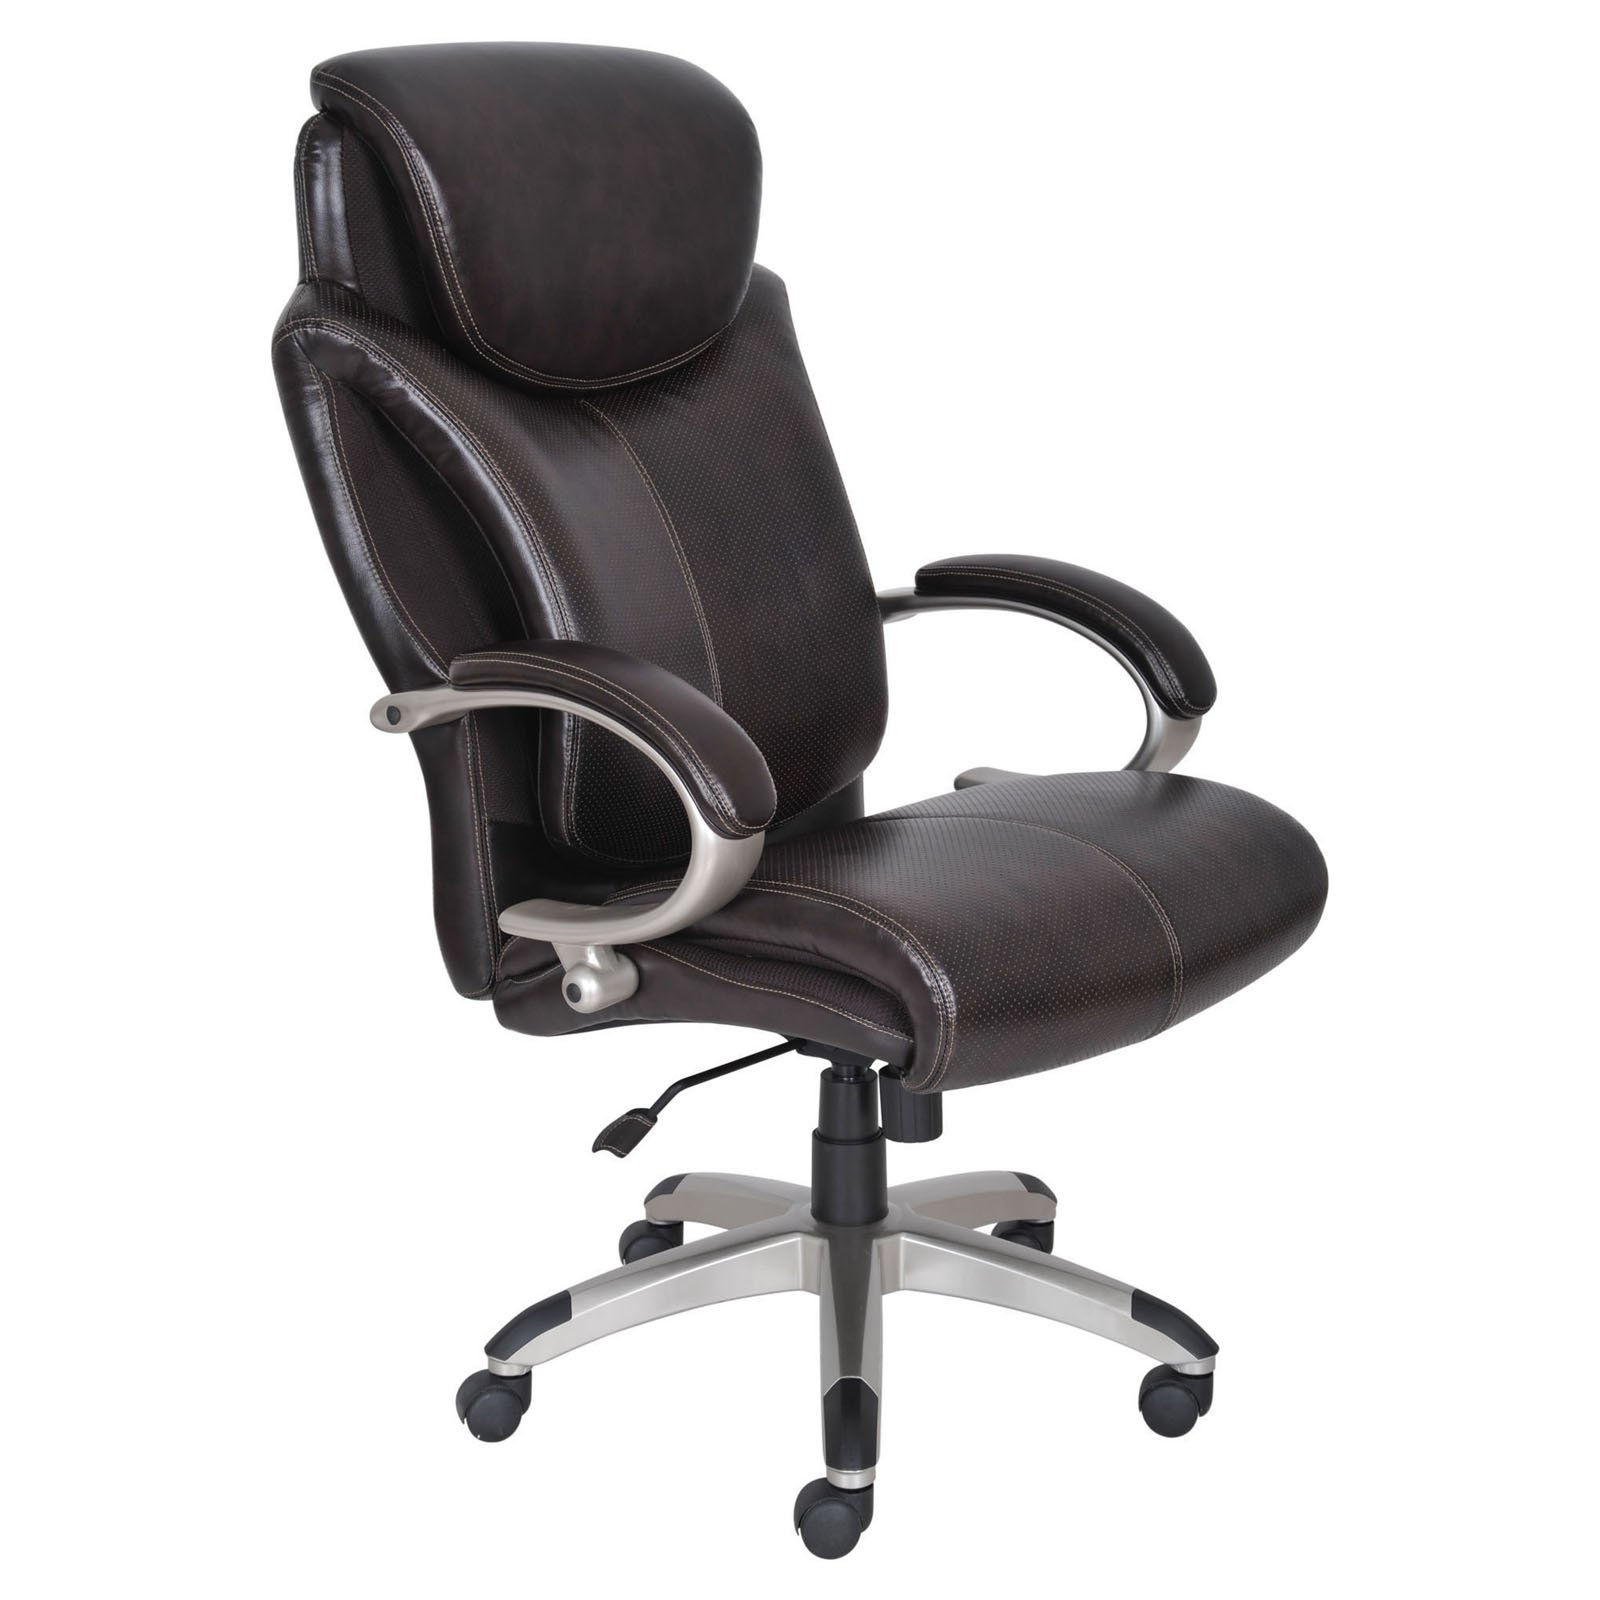 Serta Health & Wellness Big & Tall Bonded Leather Executive Office Chair, Roasted Chestnut